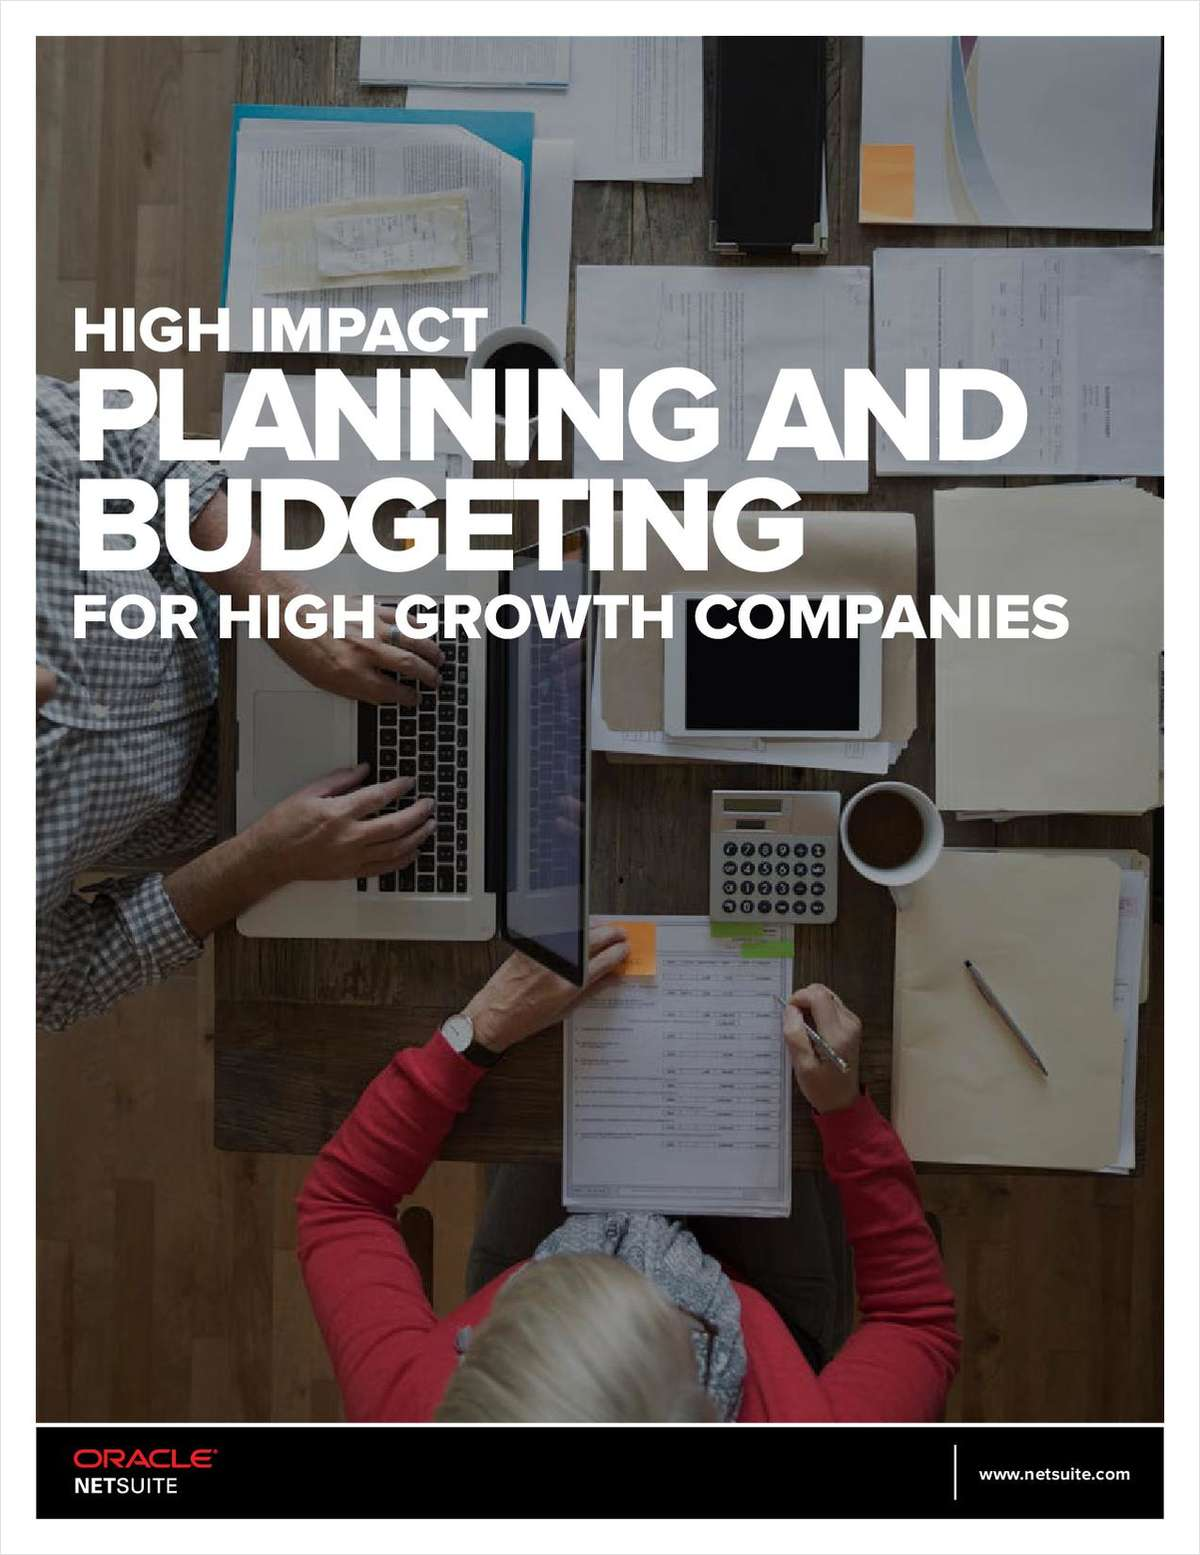 High Impact Planning and Budgeting For High Growth Companies